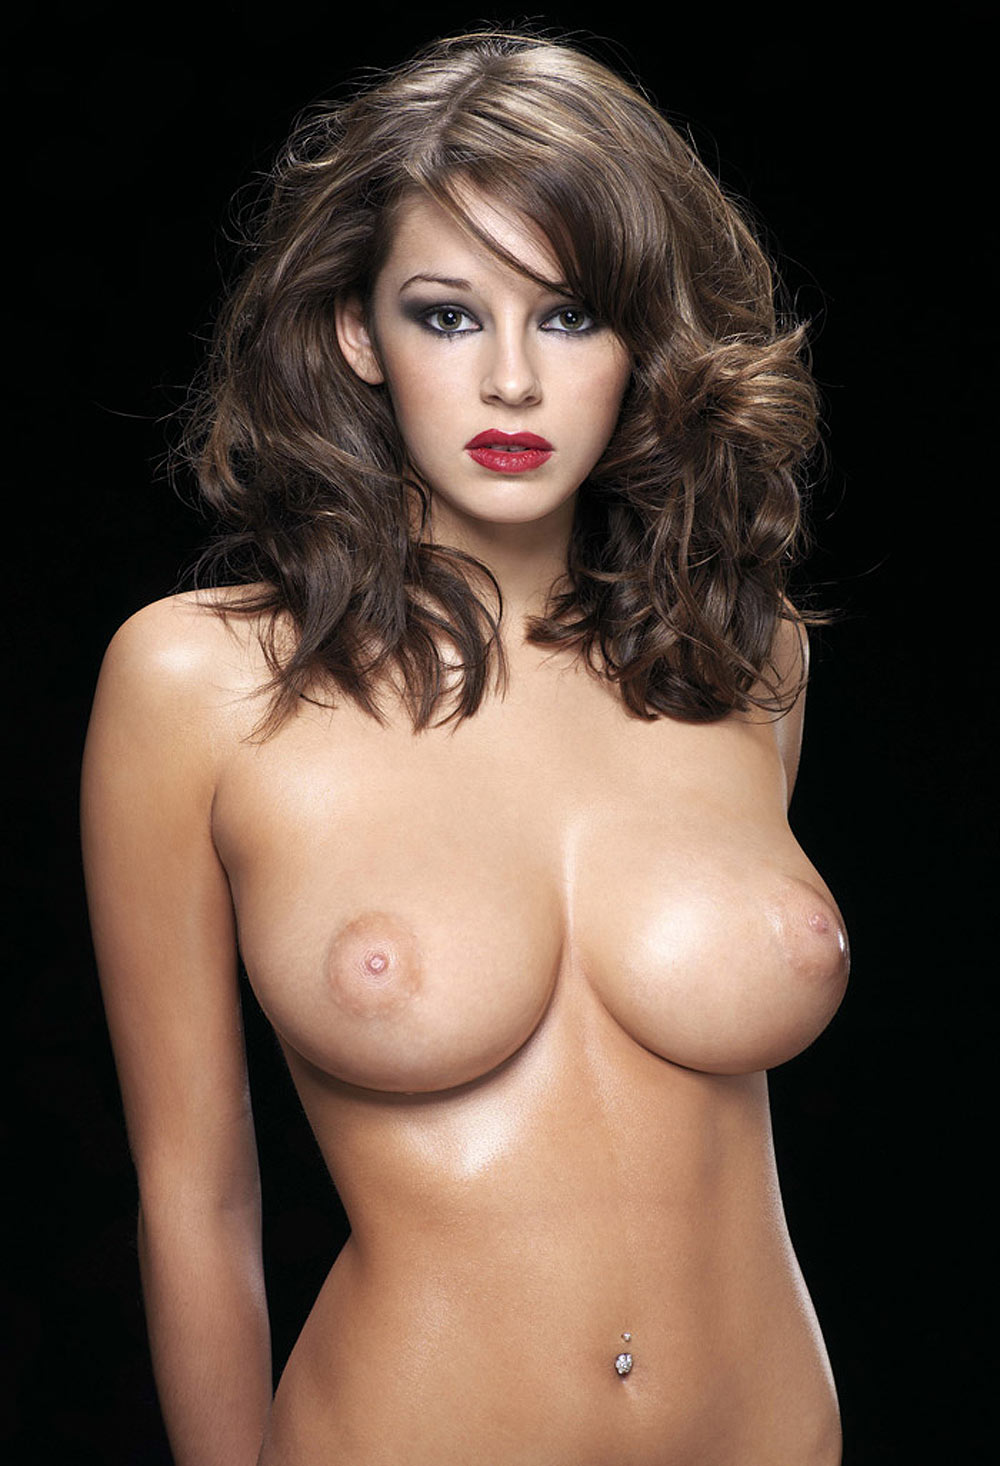 Did Keeley hazell hot nude sex pity